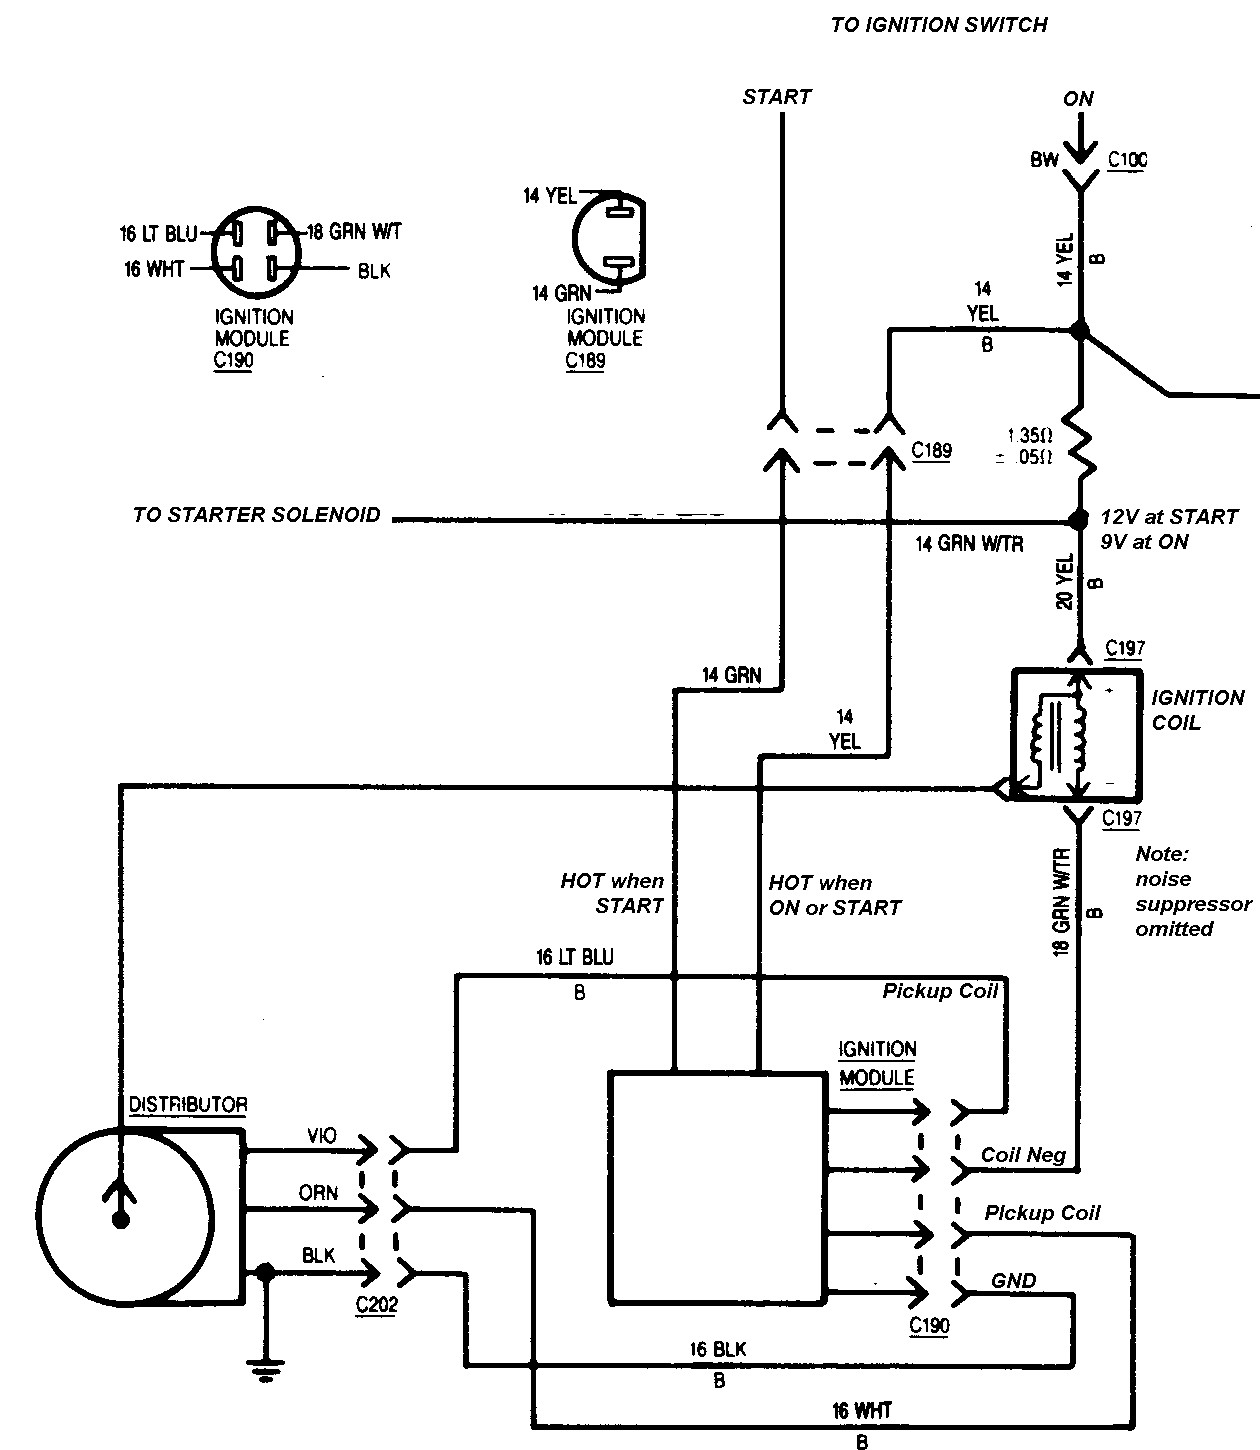 Surprising 1989 Chevy 350 Engine Diagram Wiring Diagram Data Wiring Cloud Oideiuggs Outletorg